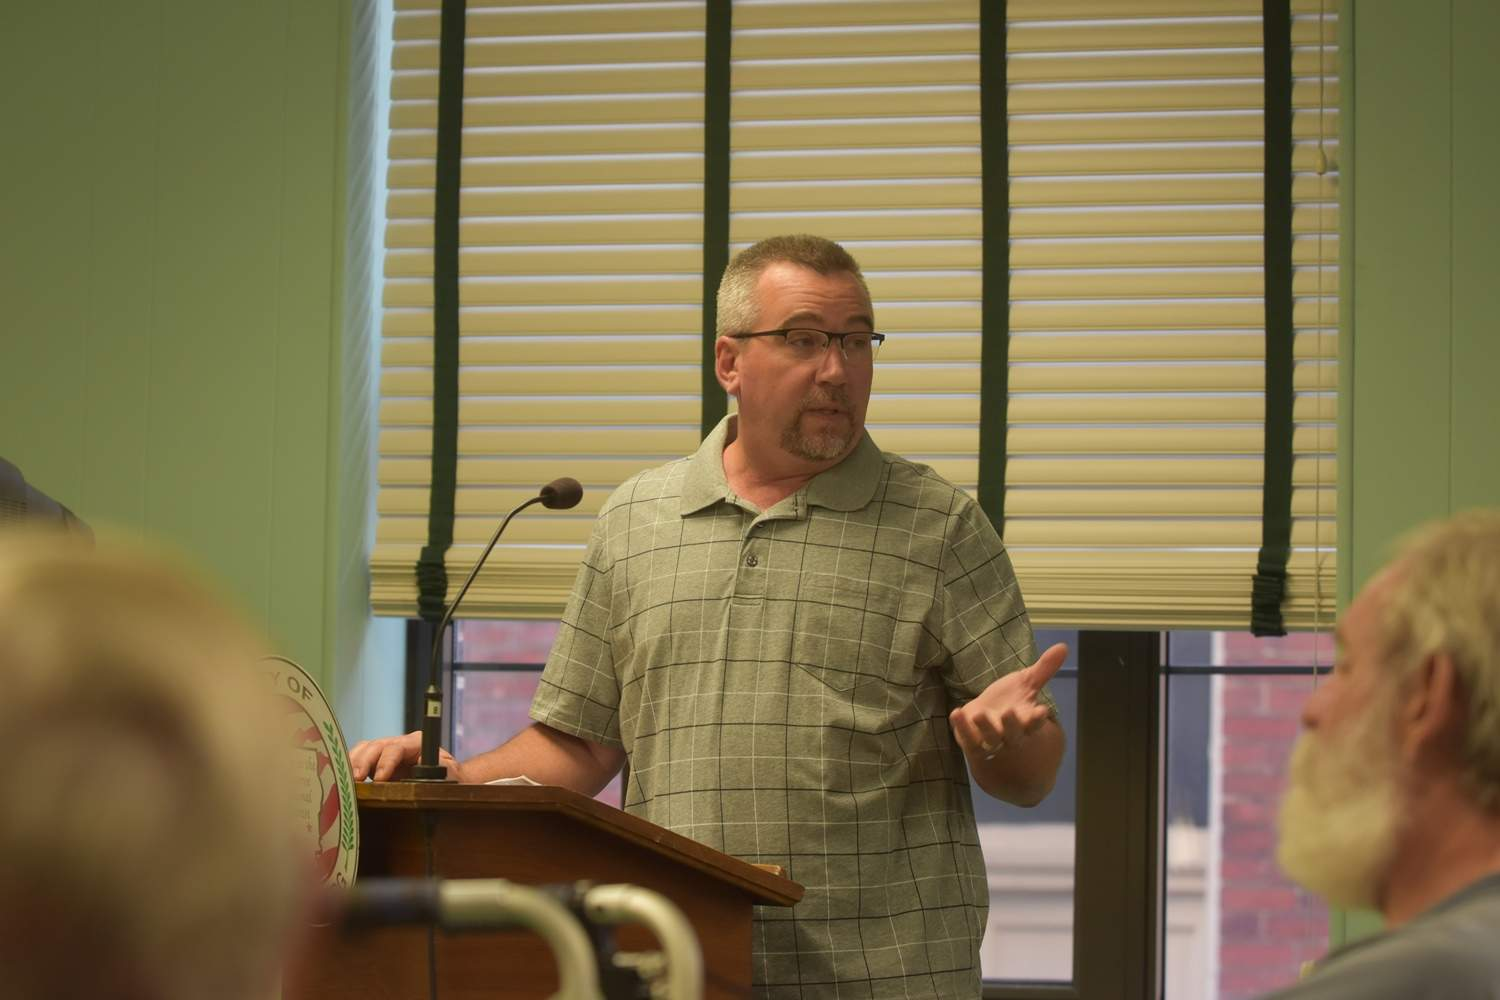 Harrisburg businessman David Crest, who owns Illinois Storage, 815 W. Pine St., addresses city council concerning recent flooding Thursday evening. Crest spoke on behalf of several businessowners who wish to work with the city to continue to reduce potential flooded locations.